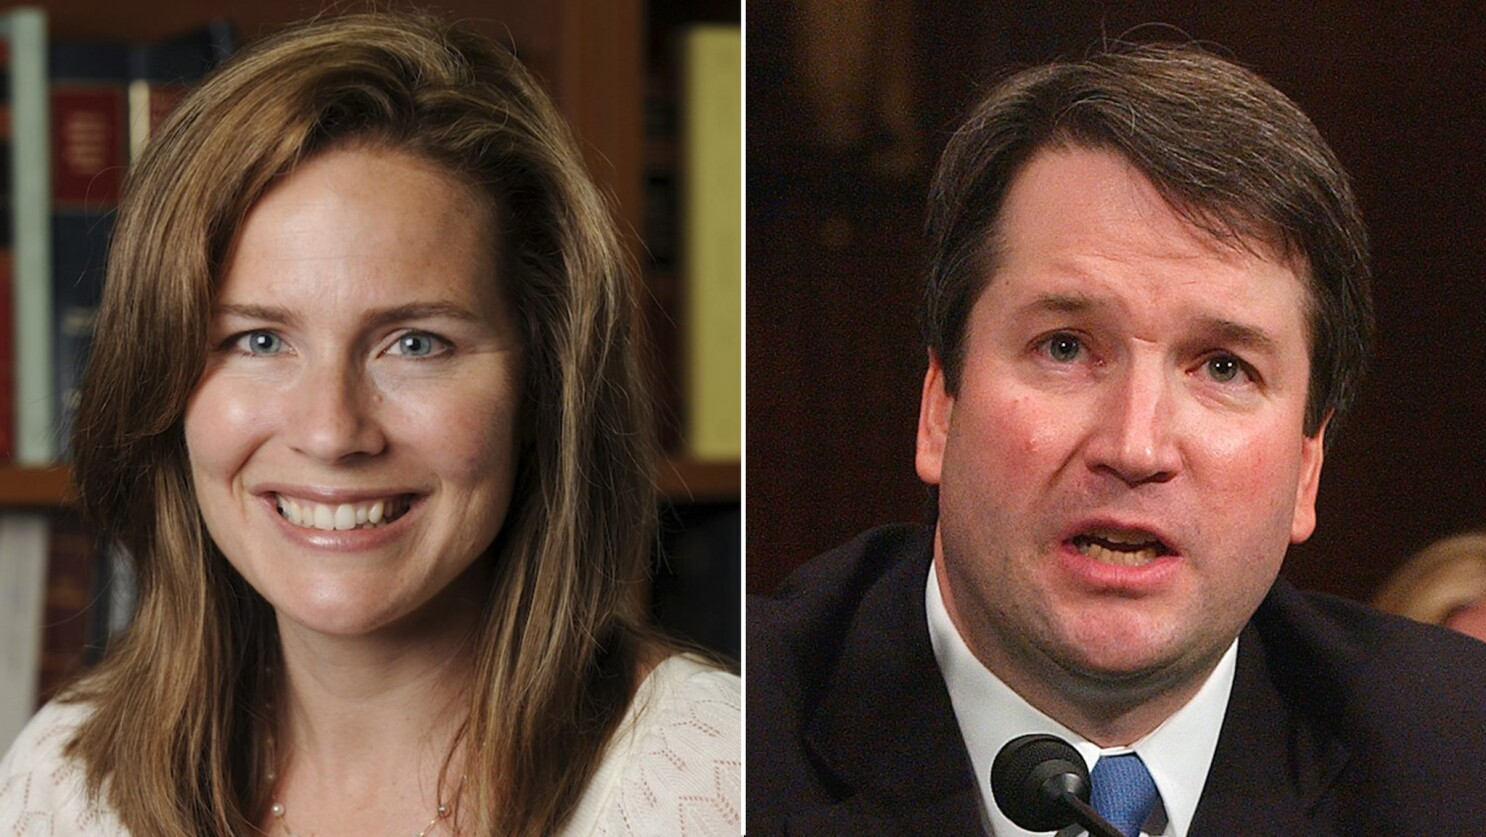 Judges Brett Kavanaugh and Amy Coney Barrett are leading candidates for  Supreme Court seat - Los Angeles Times